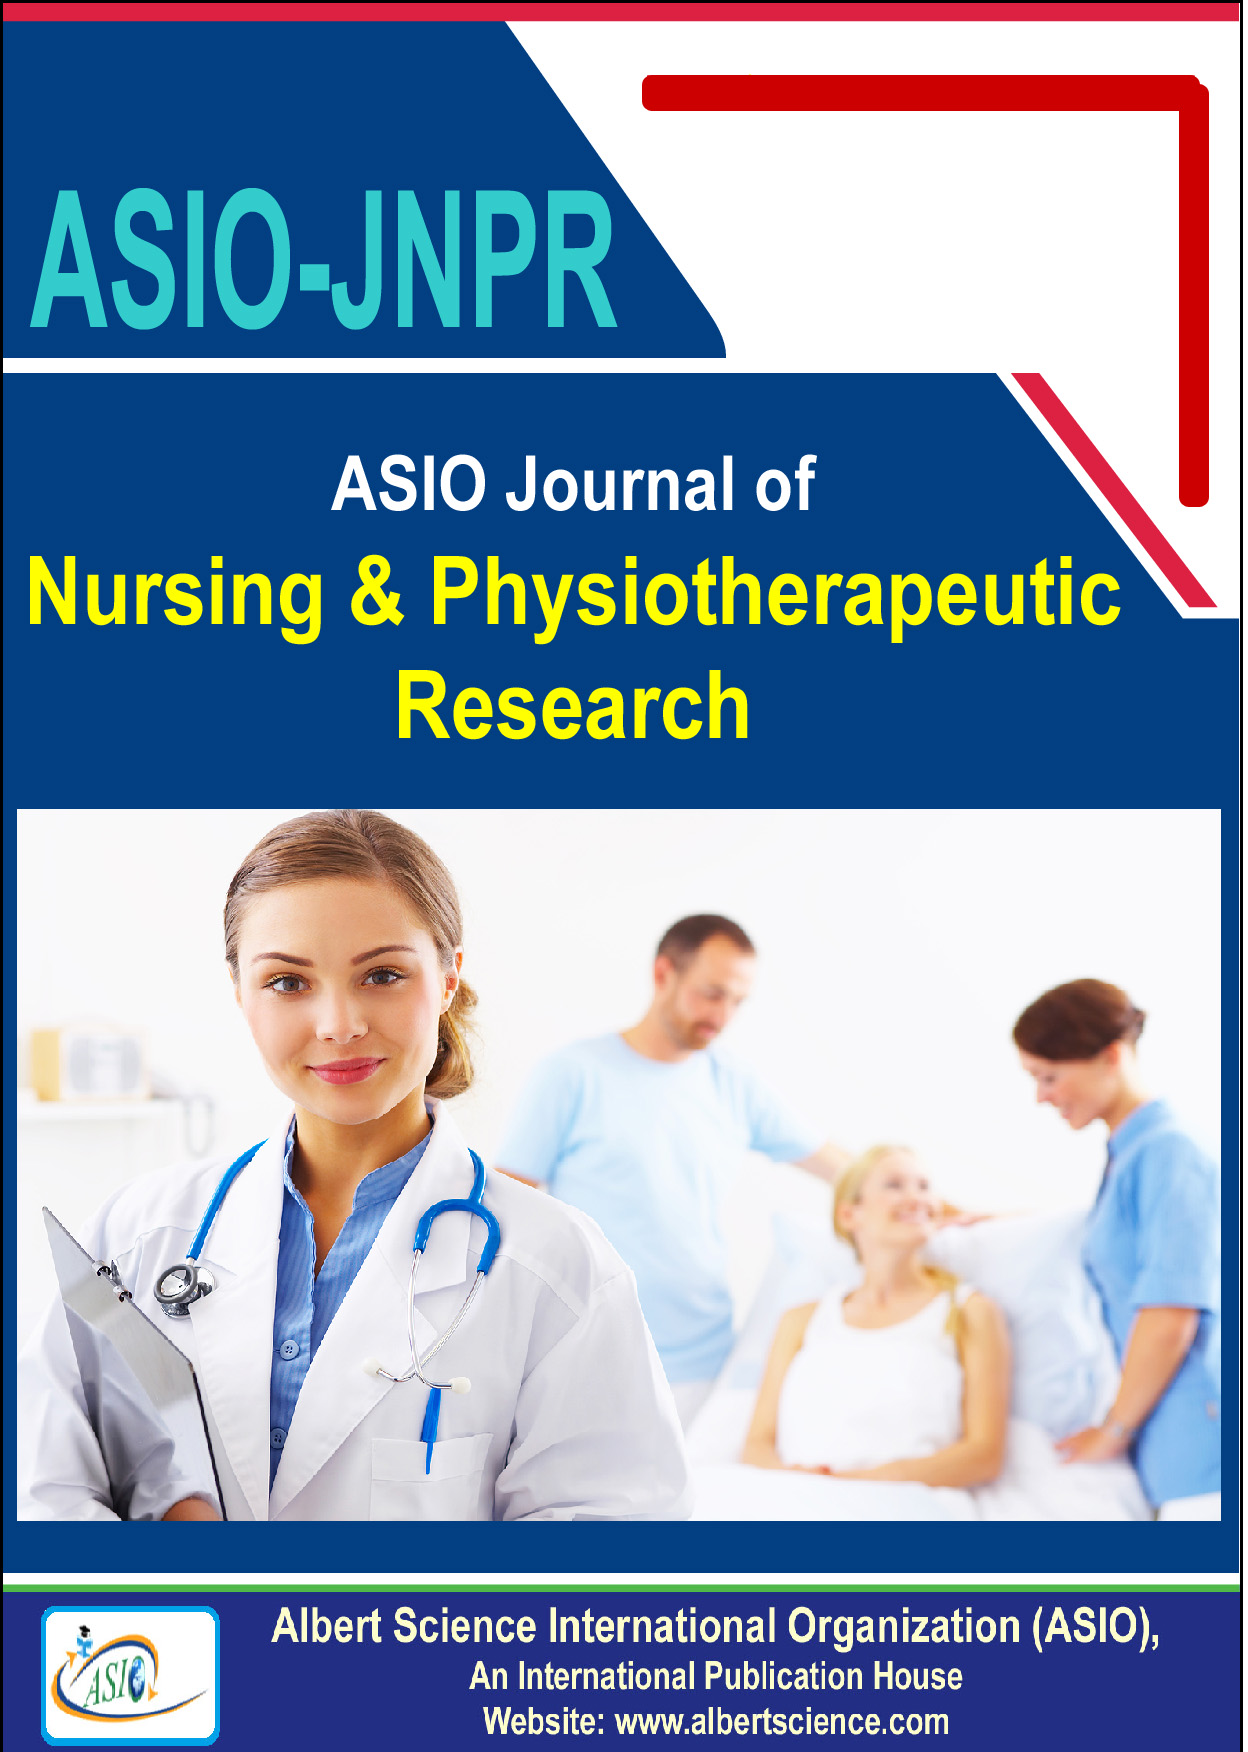 nursing research journals Clinical nursing research is a refereed journal publishing research articles that focus on nursing practice it disseminates research findings of particular interest.